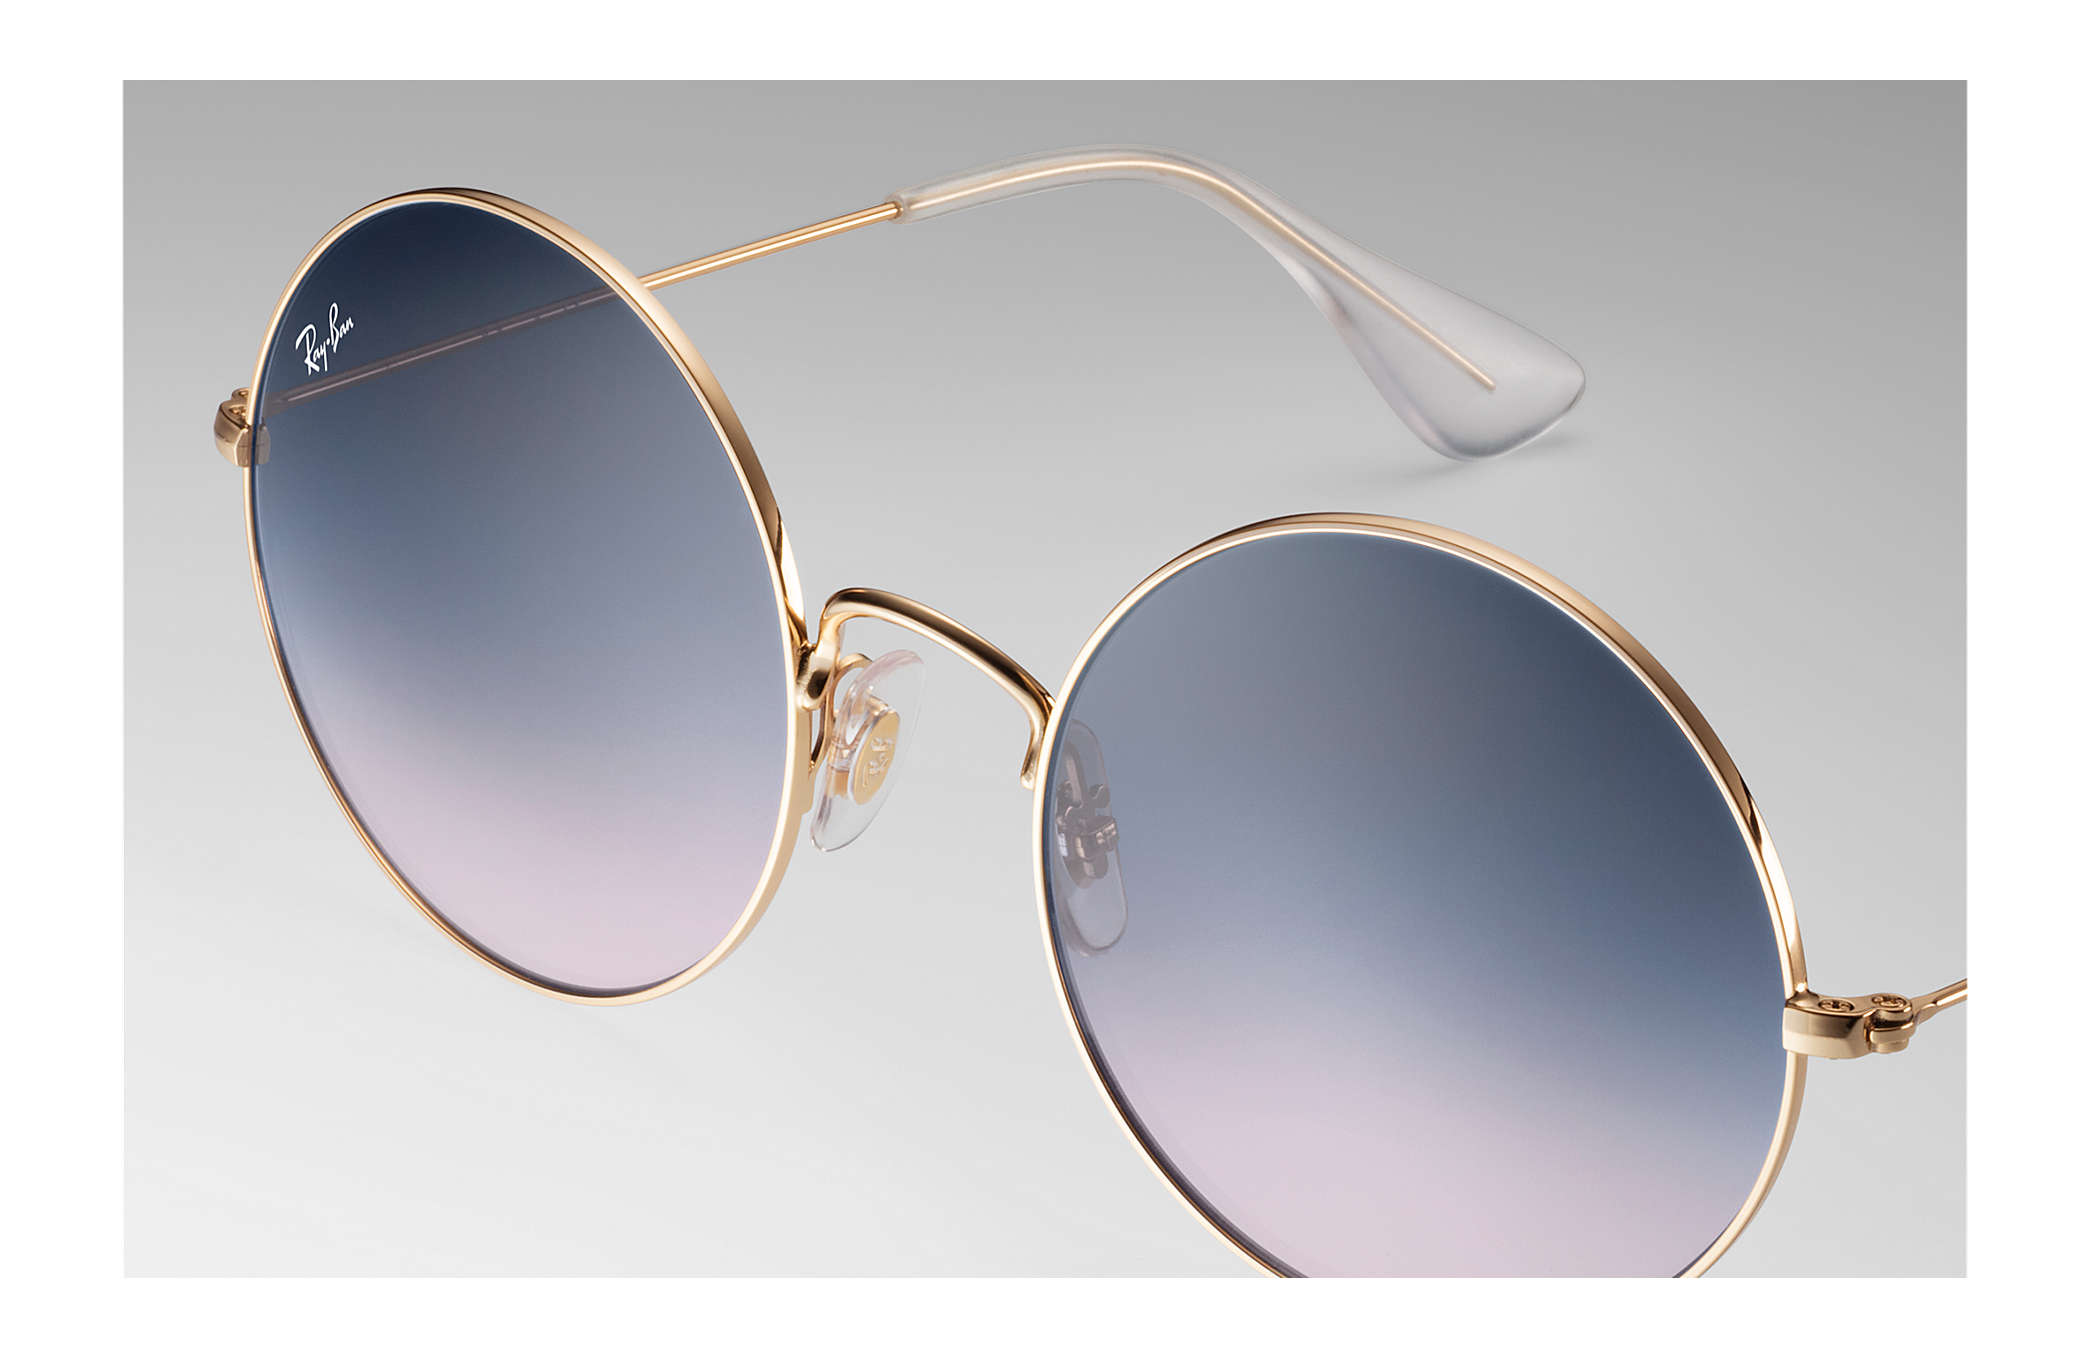 74f7b55314d Ray-Ban Ja-jo RB3592 Gold - Metal - Blue Lenses - 0RB3592001 I955 ...